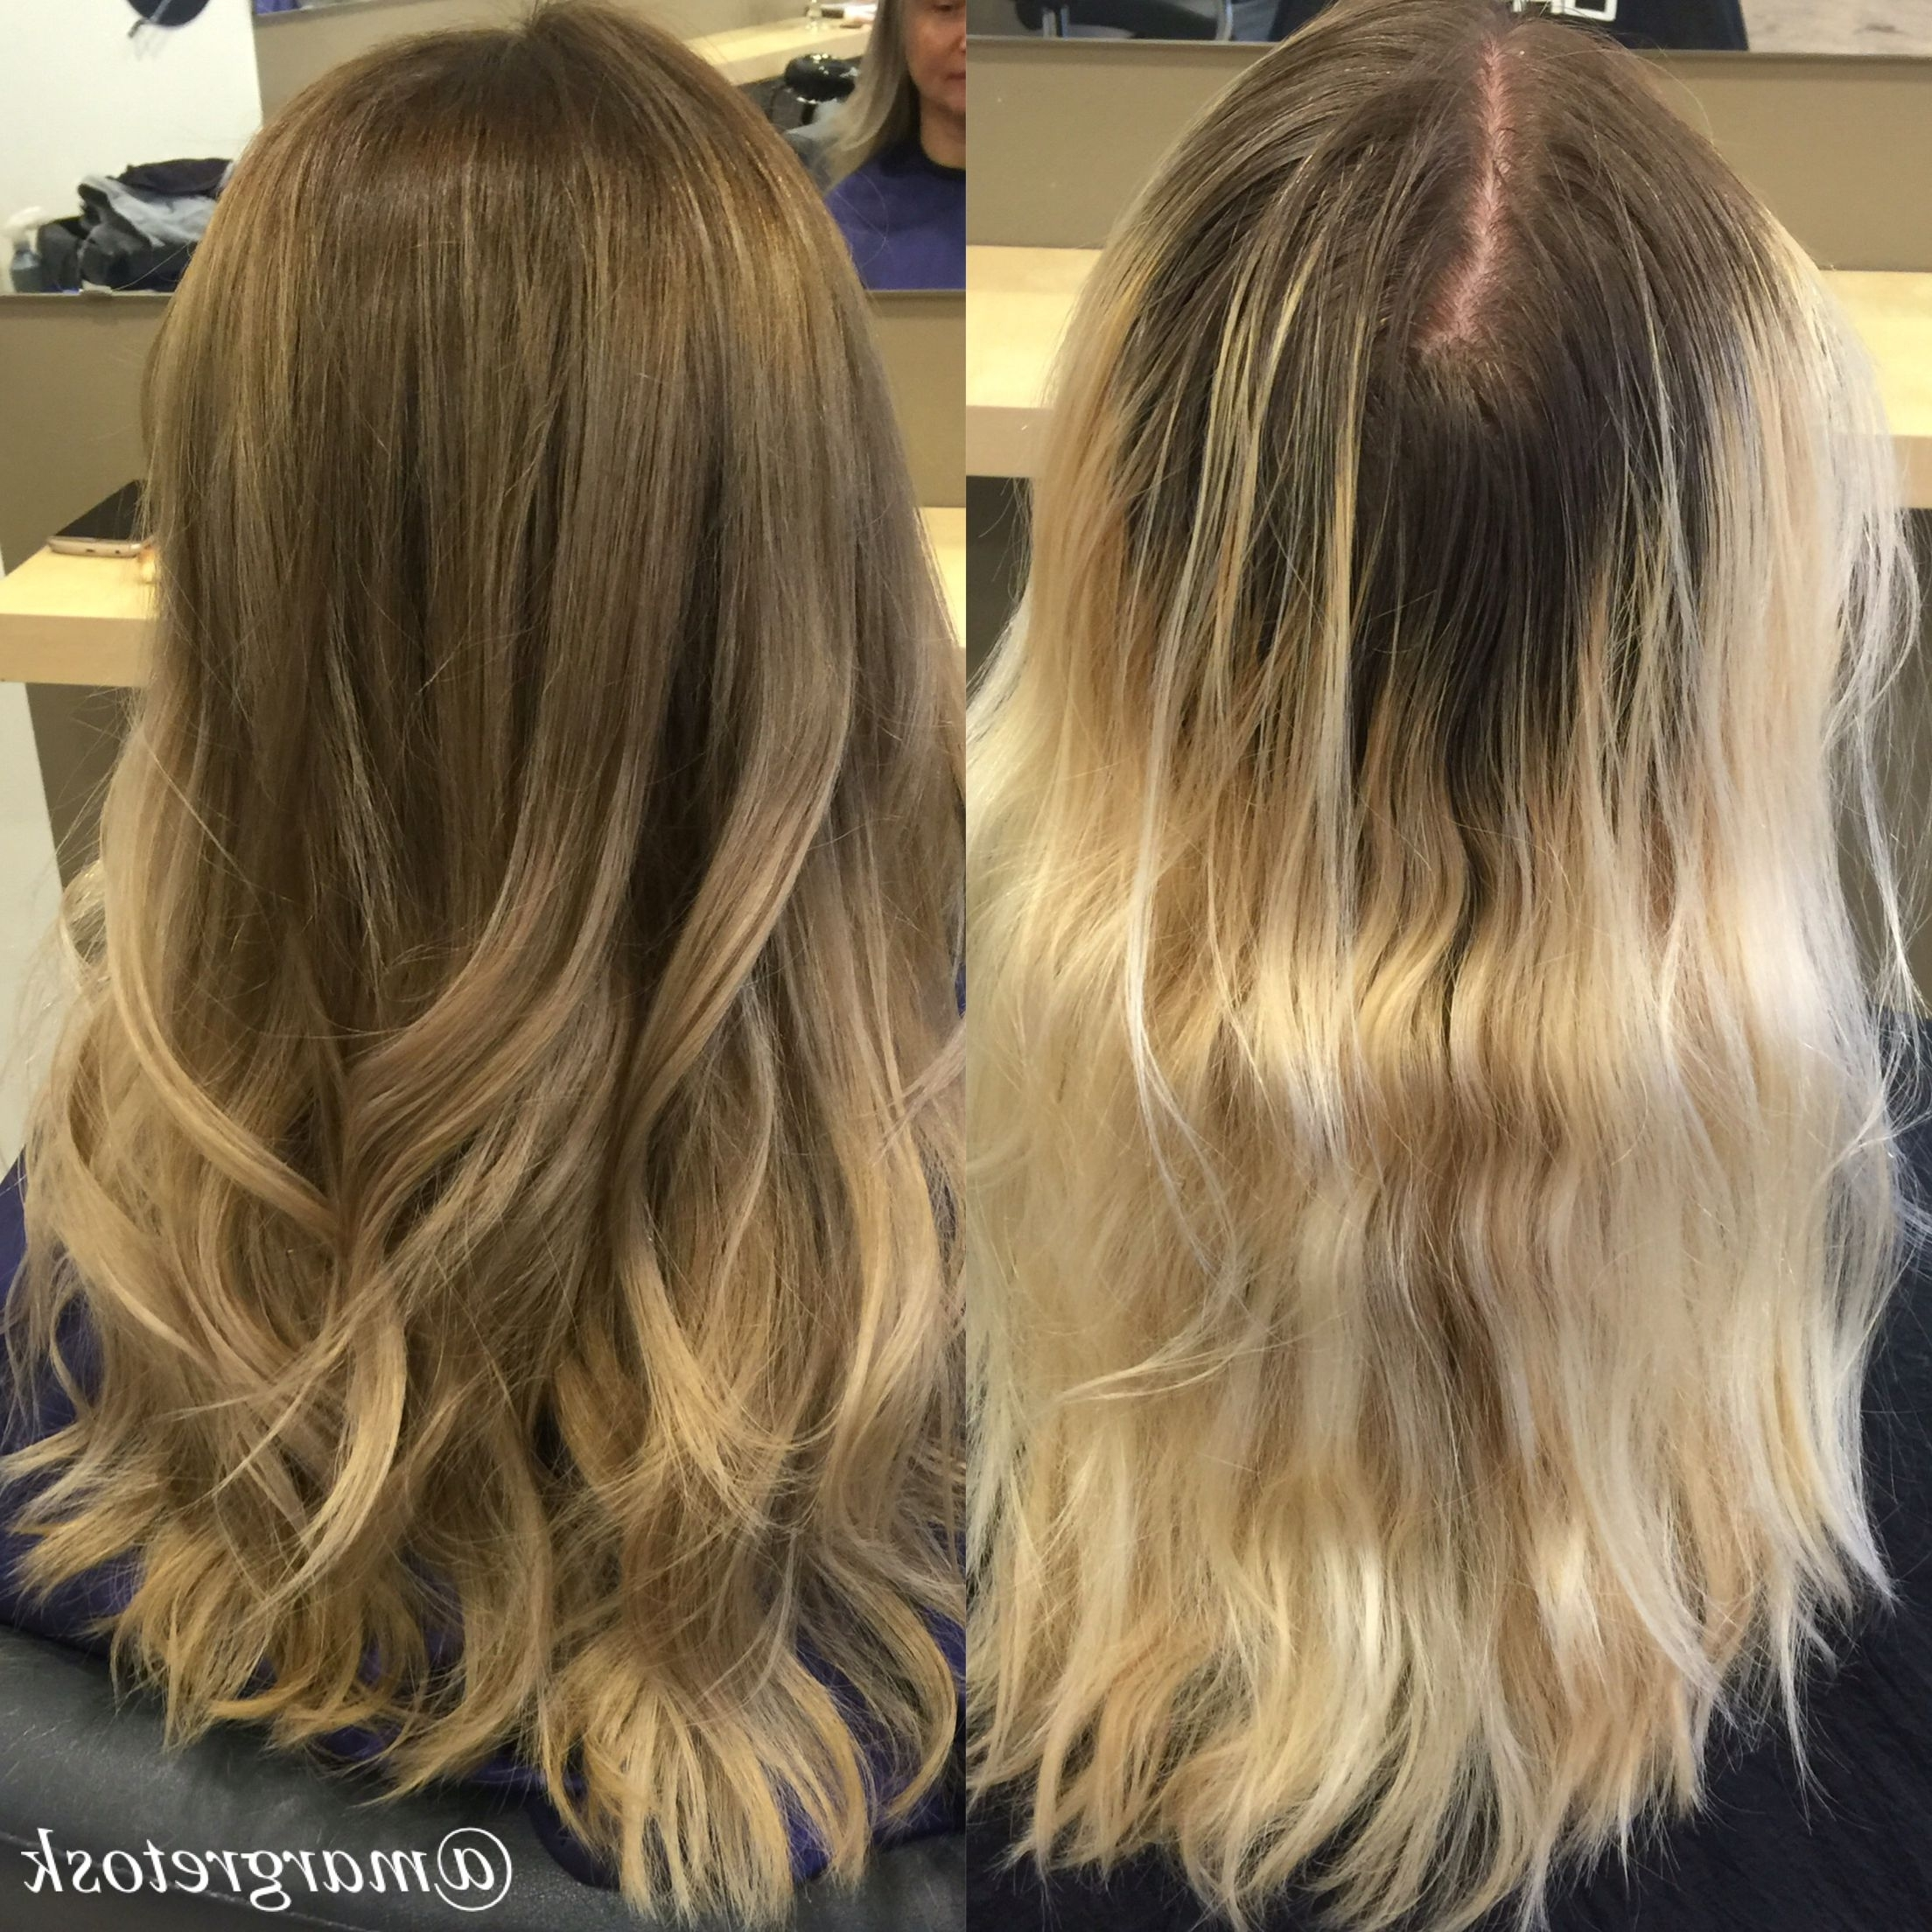 2017 Grown Out Balayage Blonde Hairstyles Throughout Before And After Coloring (View 2 of 20)